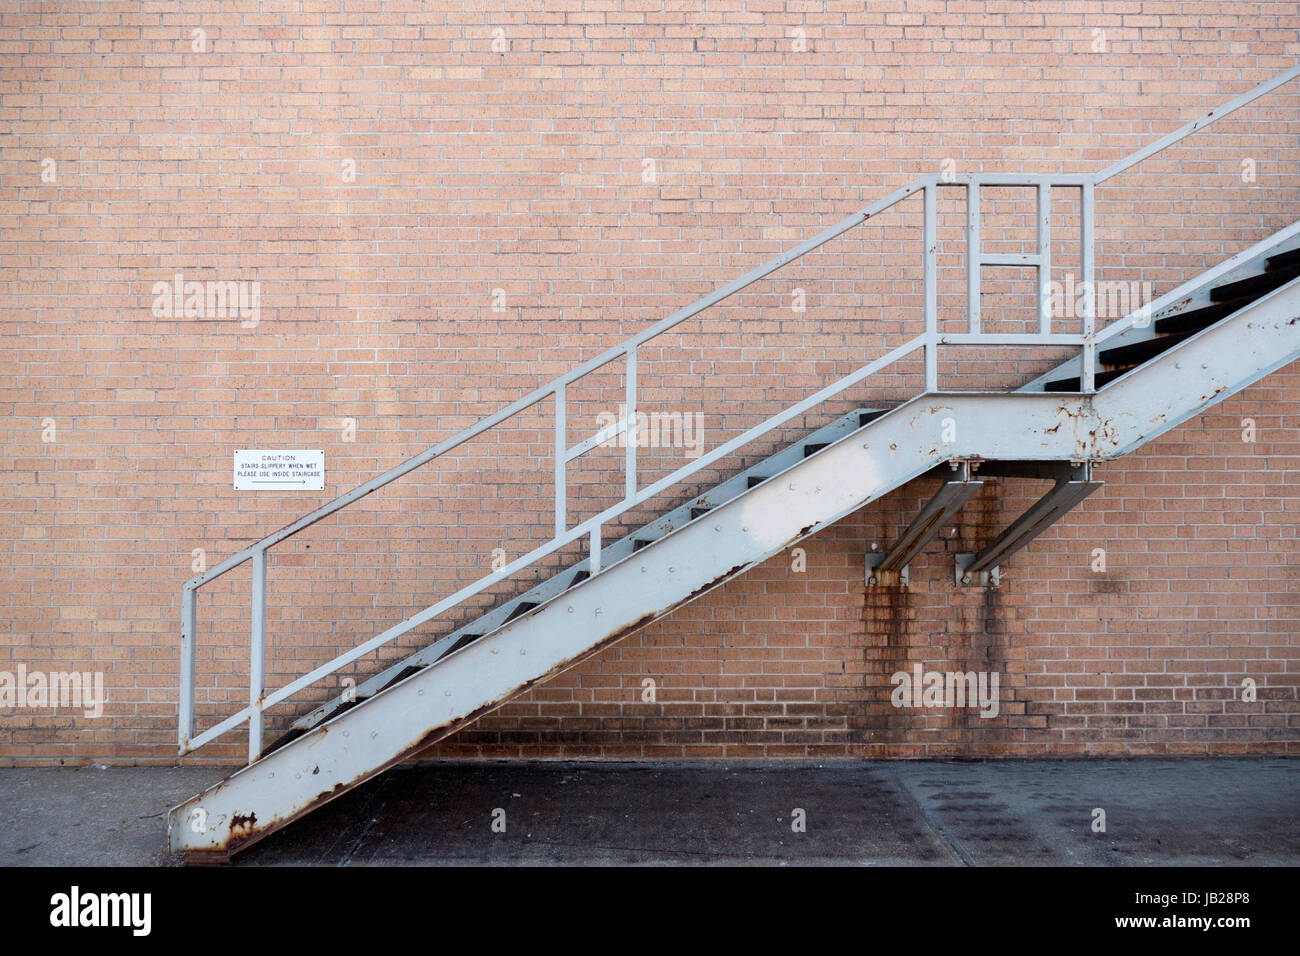 Metal Staircase On Exterior Brick Building Stock Photo, Royalty ...